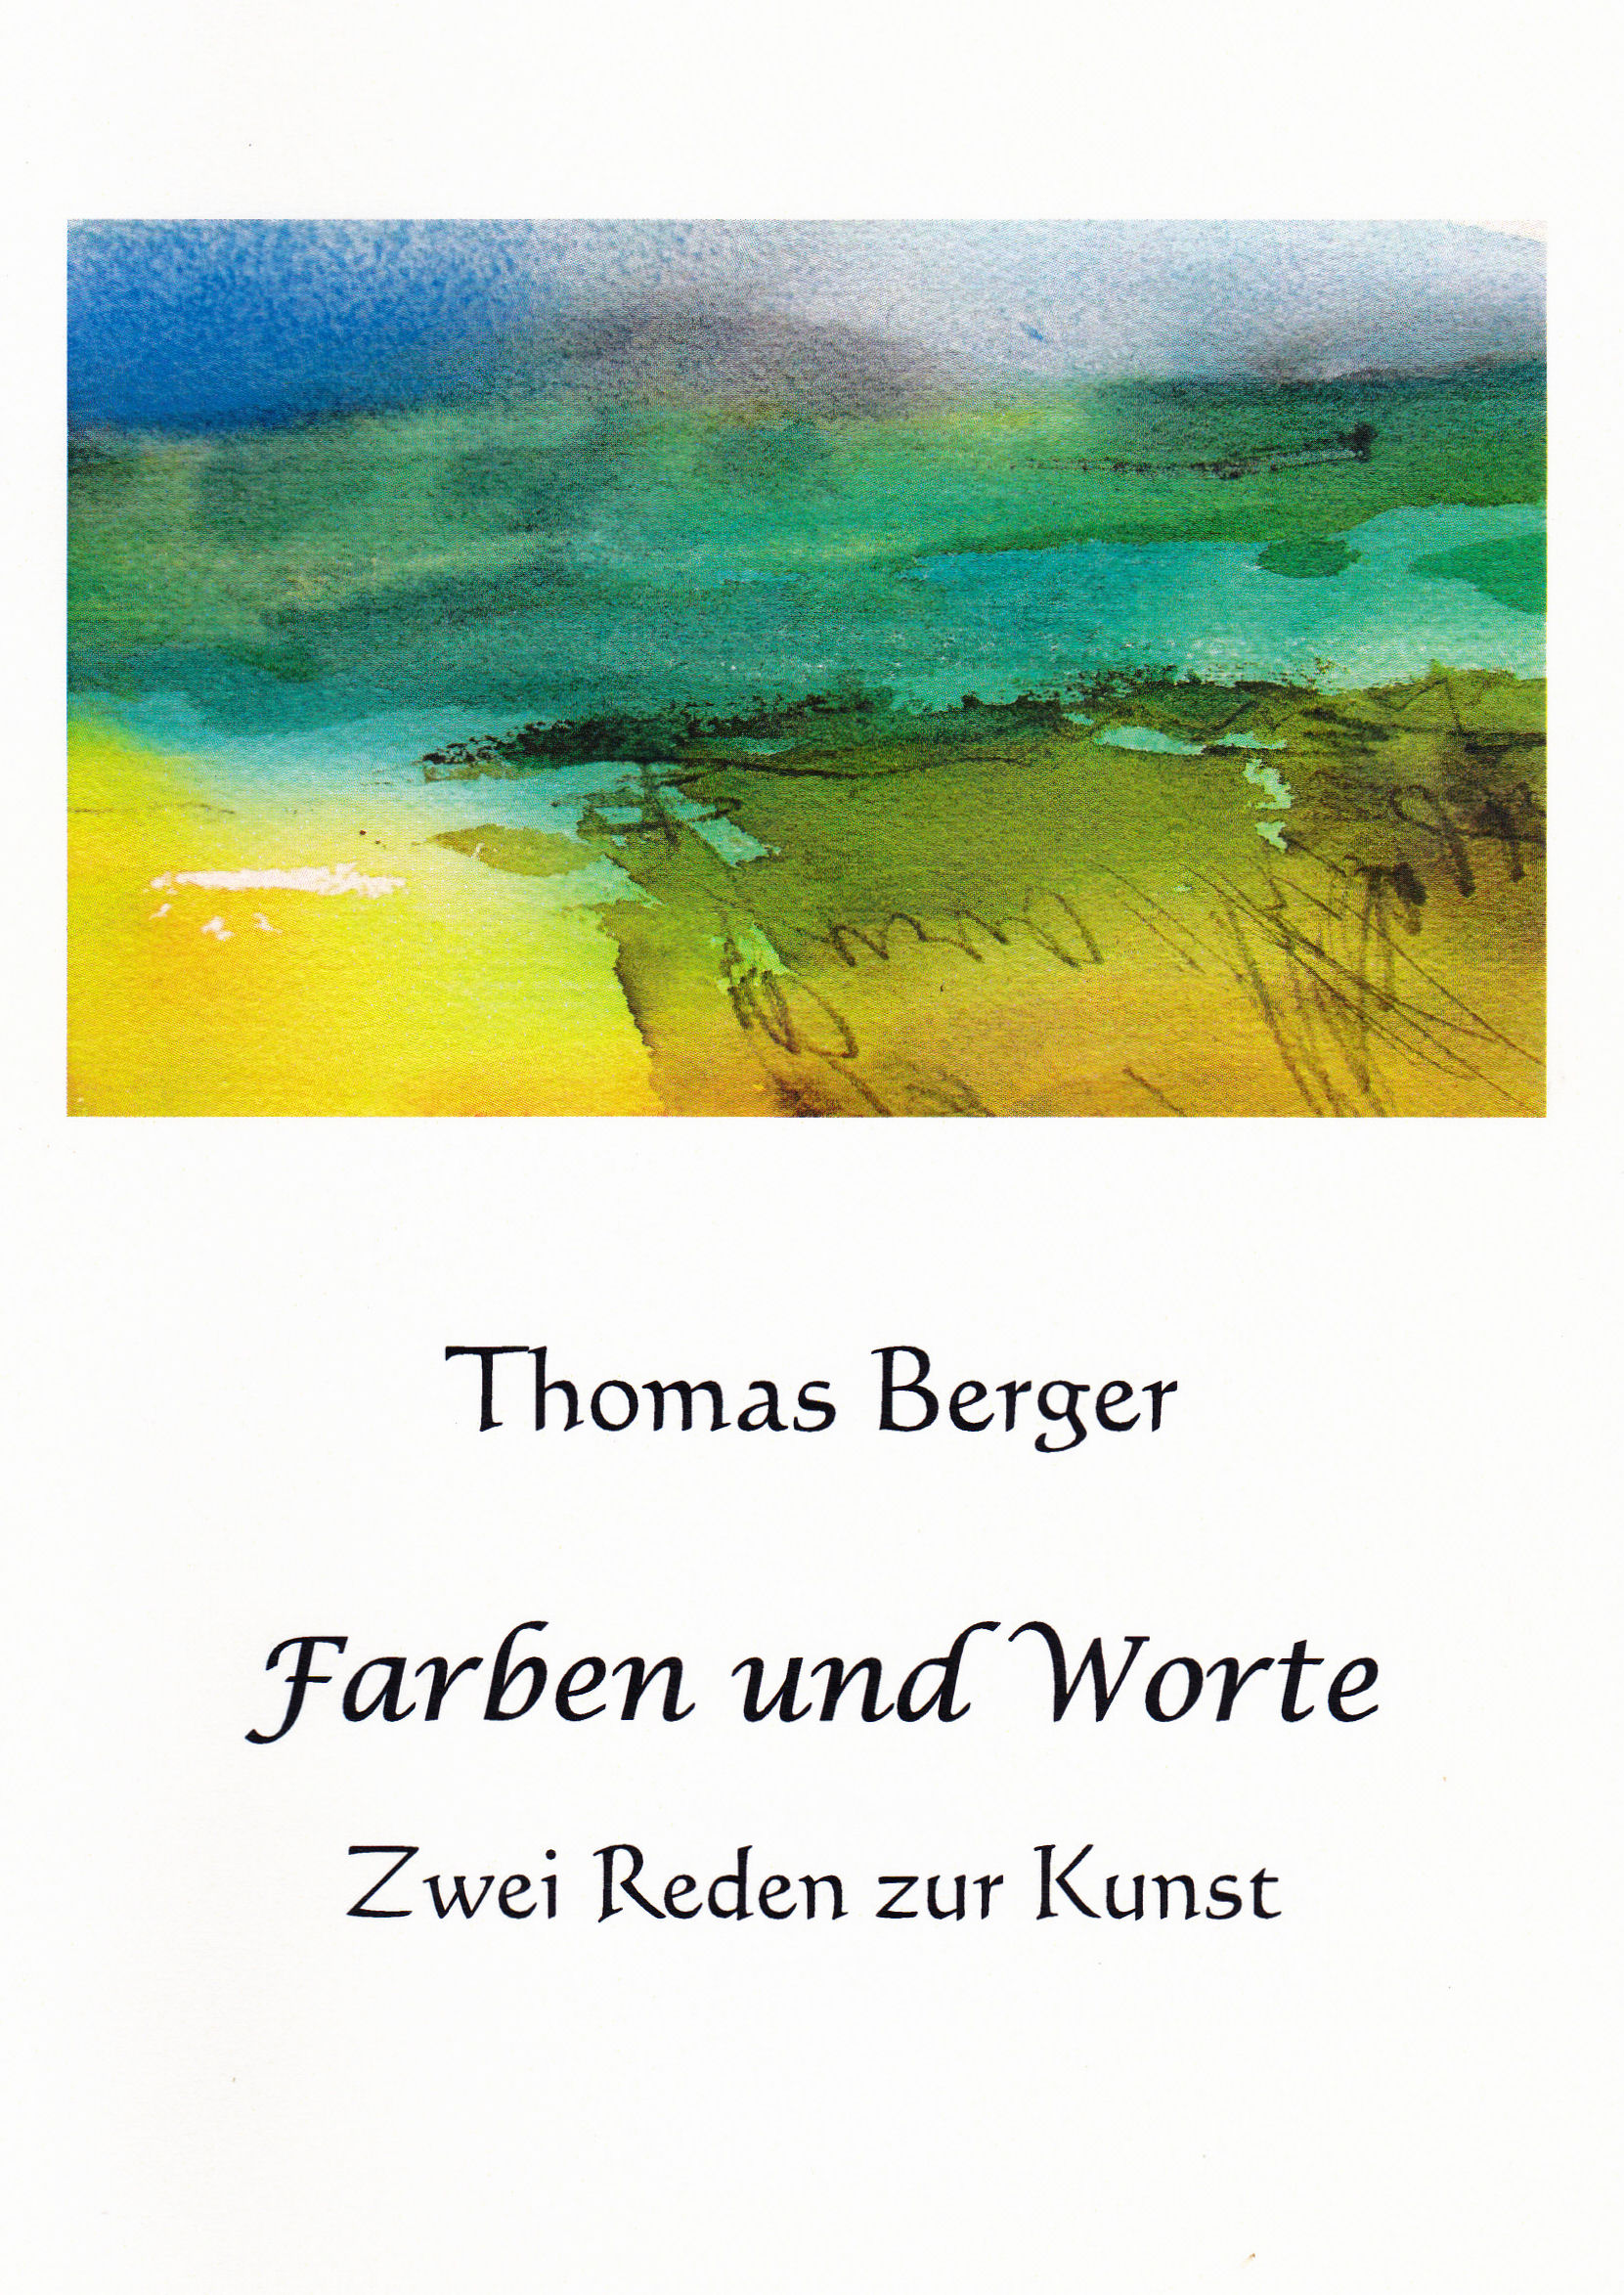 berger essays In this collection of essays on the work of, and conversations with, john berger, thirty-seven of his friends, artistic collaborators and followers come together to form the first truly international and cross-cultural celebration of his interventions berger has for decades, through his poetic humanism, brought together.